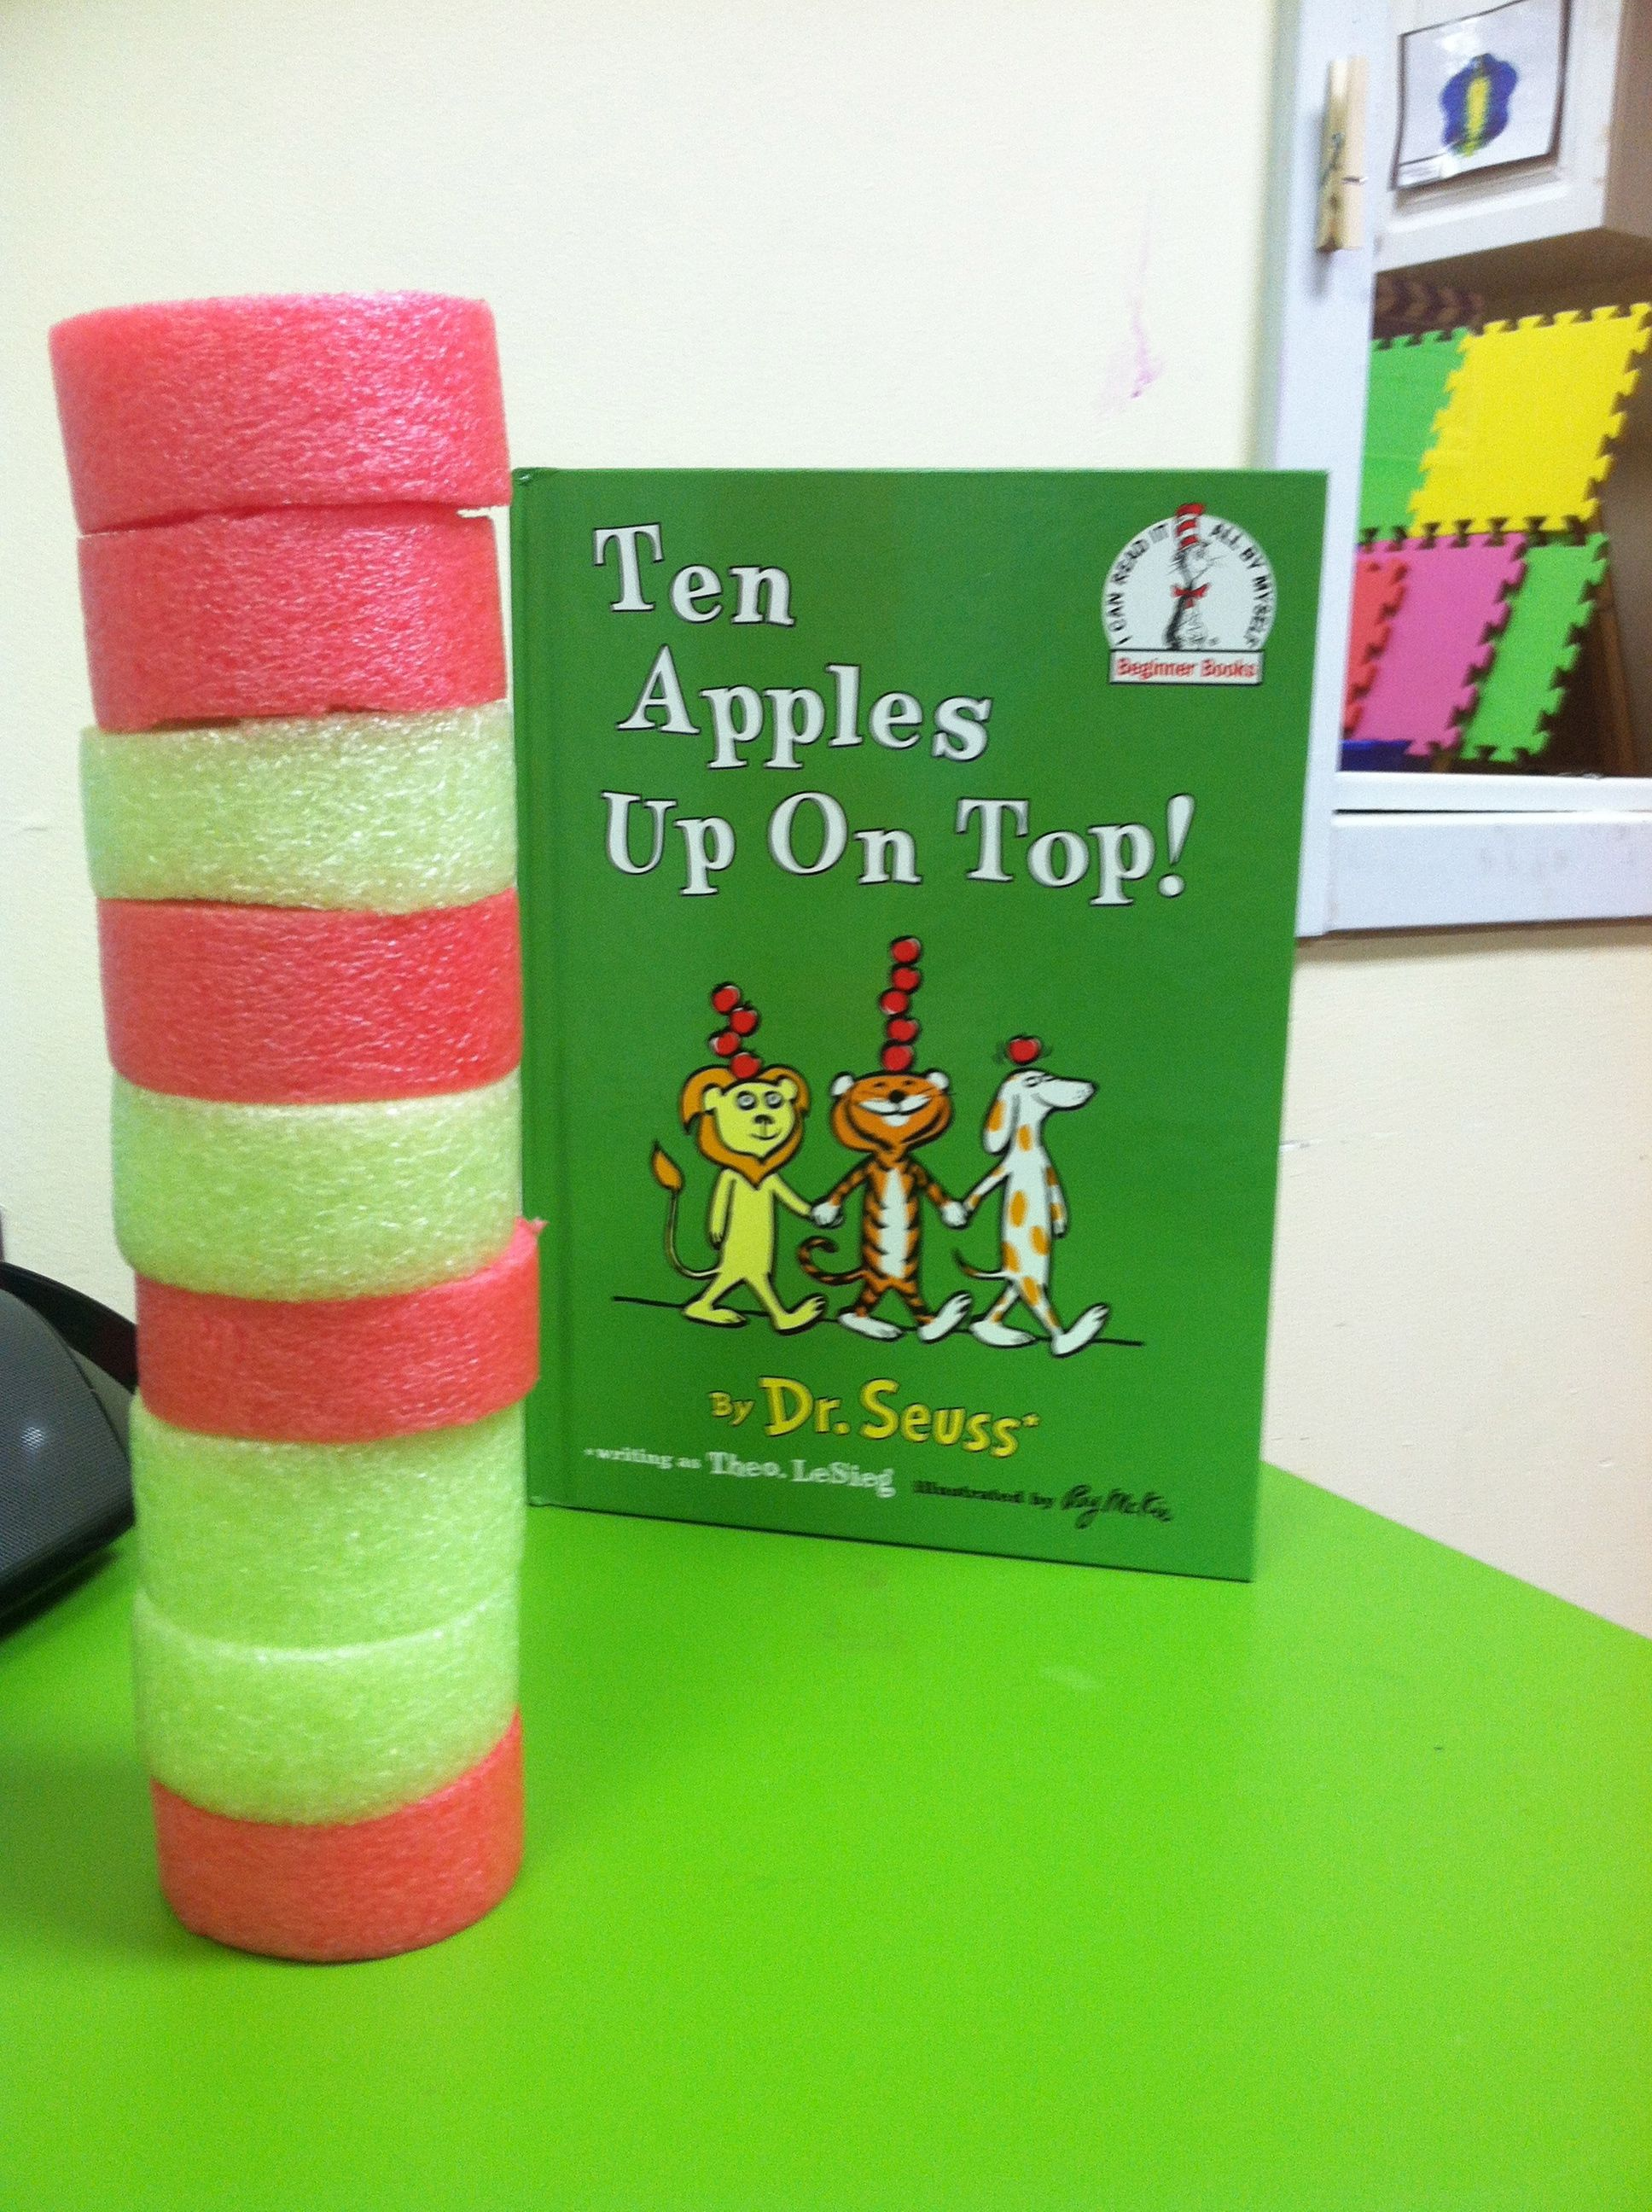 My Two Year Old Preschoolers Loved Stacking Cut Red And Green Pool Noodles Pretending Them To